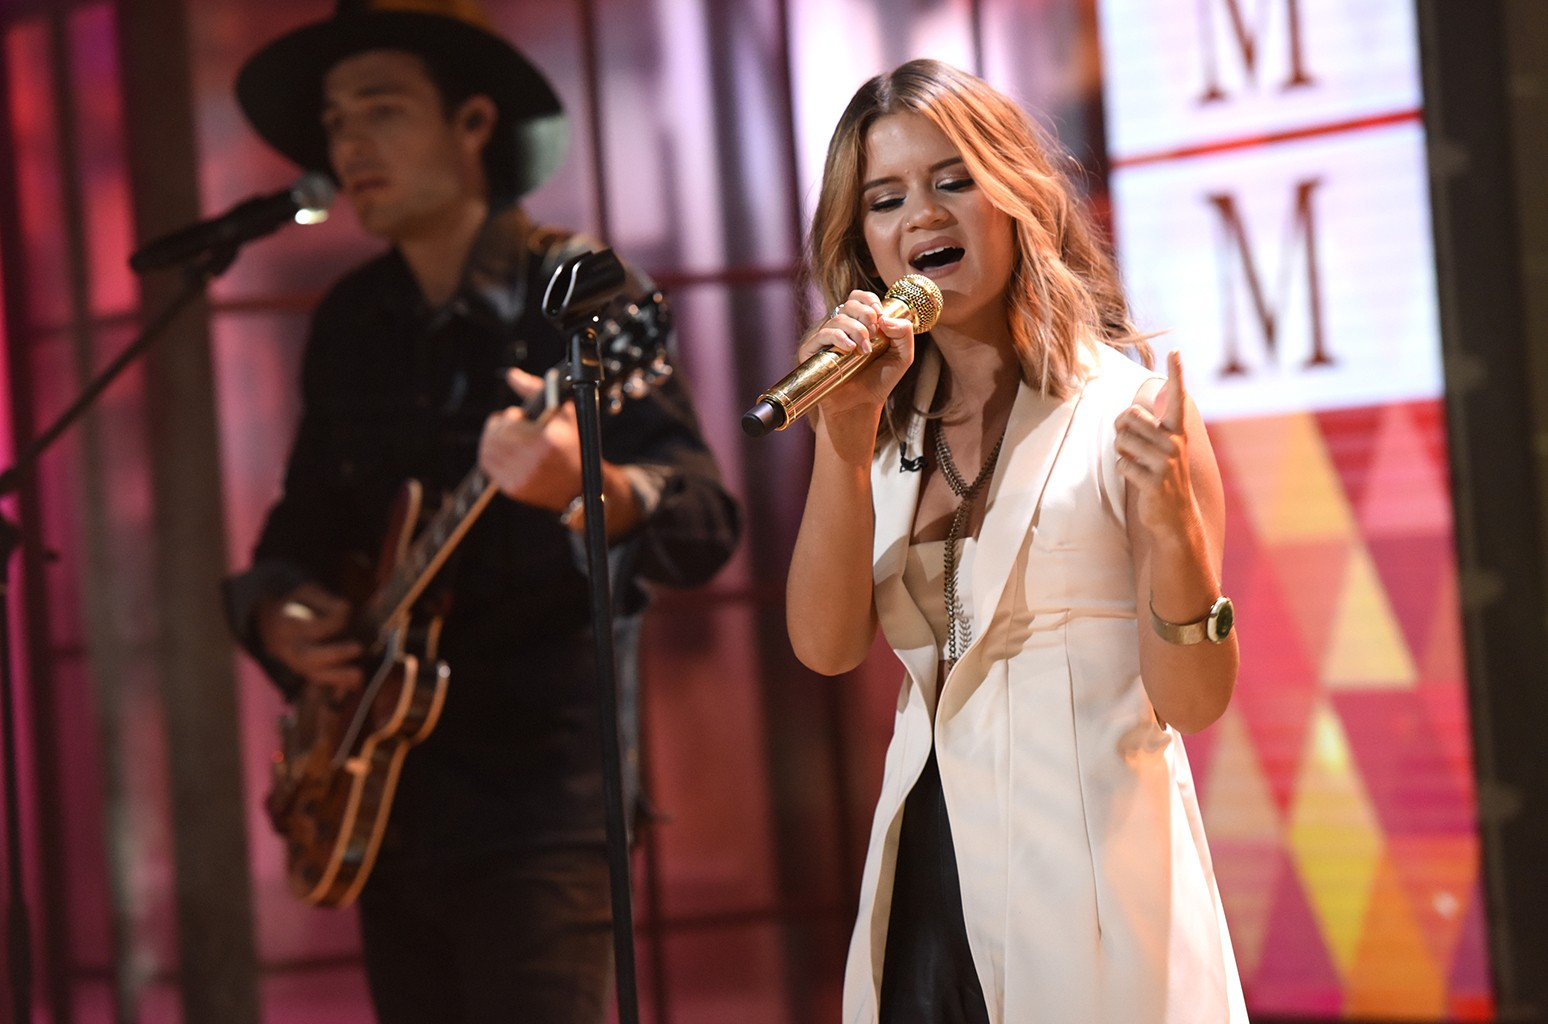 Maren Morris performs on the Today show